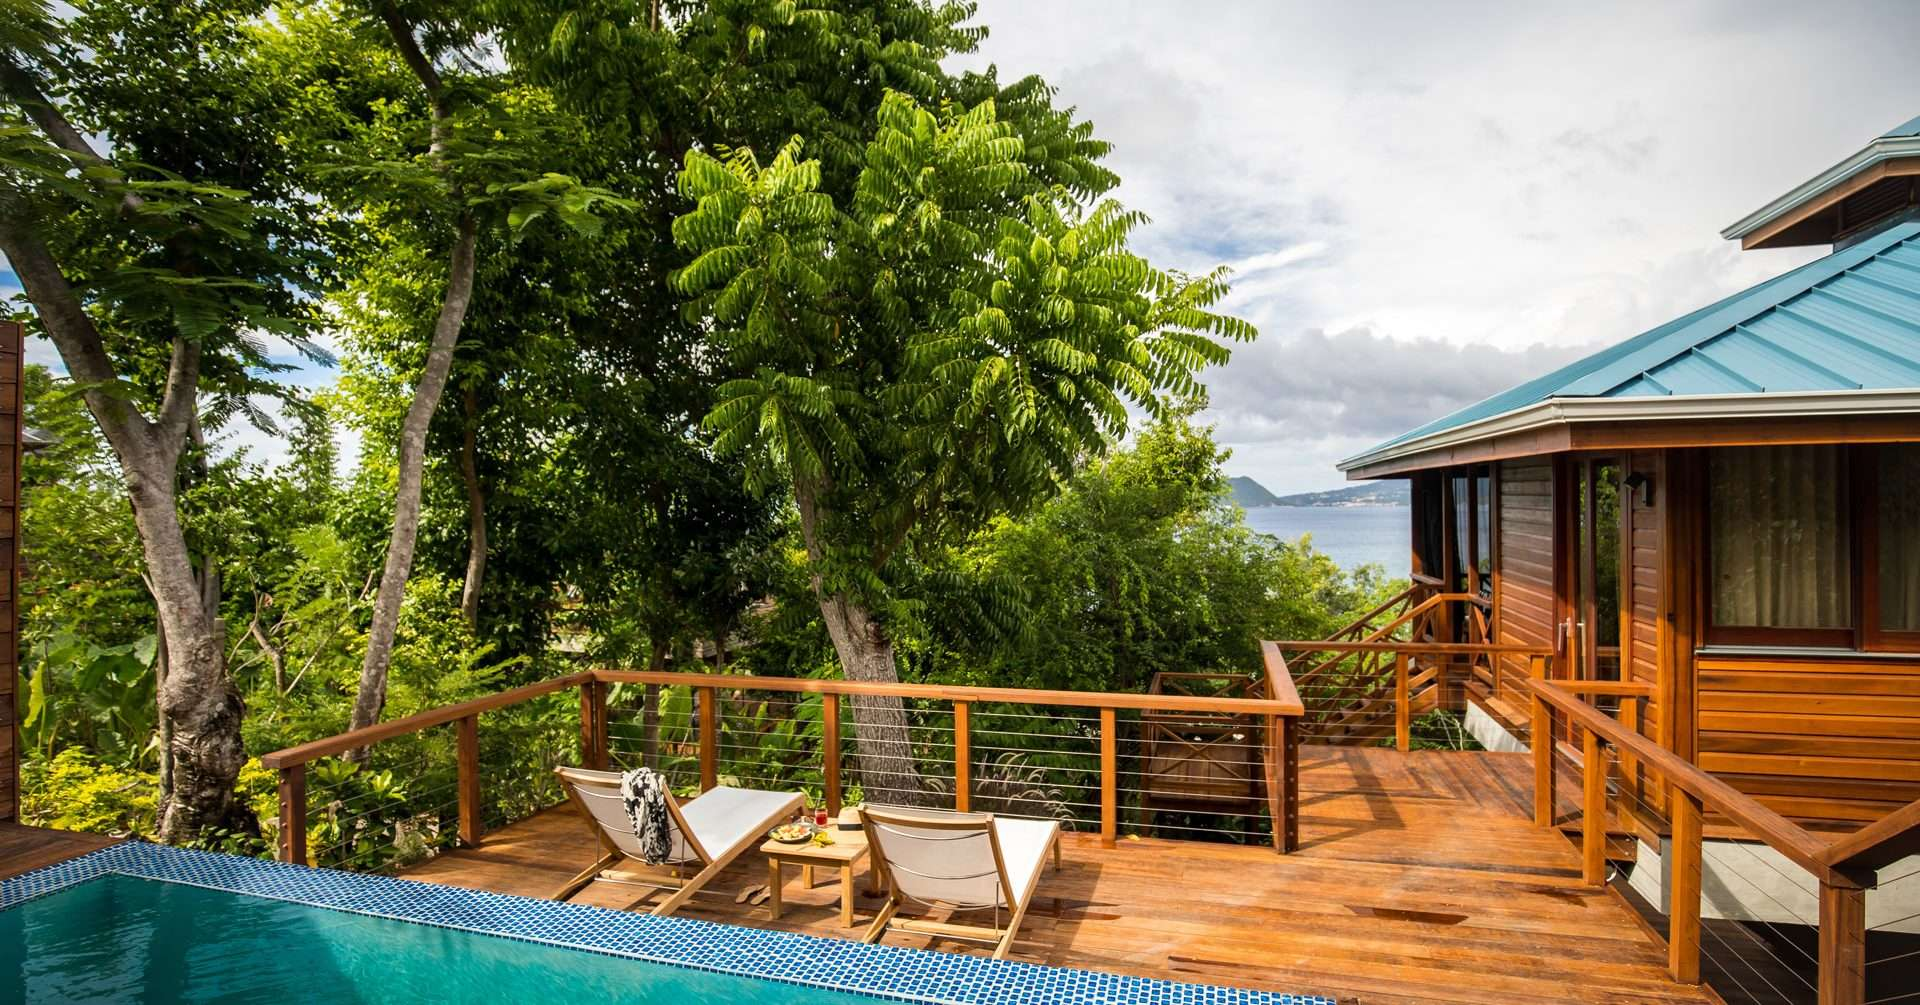 Luxury villa rentals caribbean - Dominica - Secret bay - No location 4 - Ylang Ylang Villa II - Image 1/10